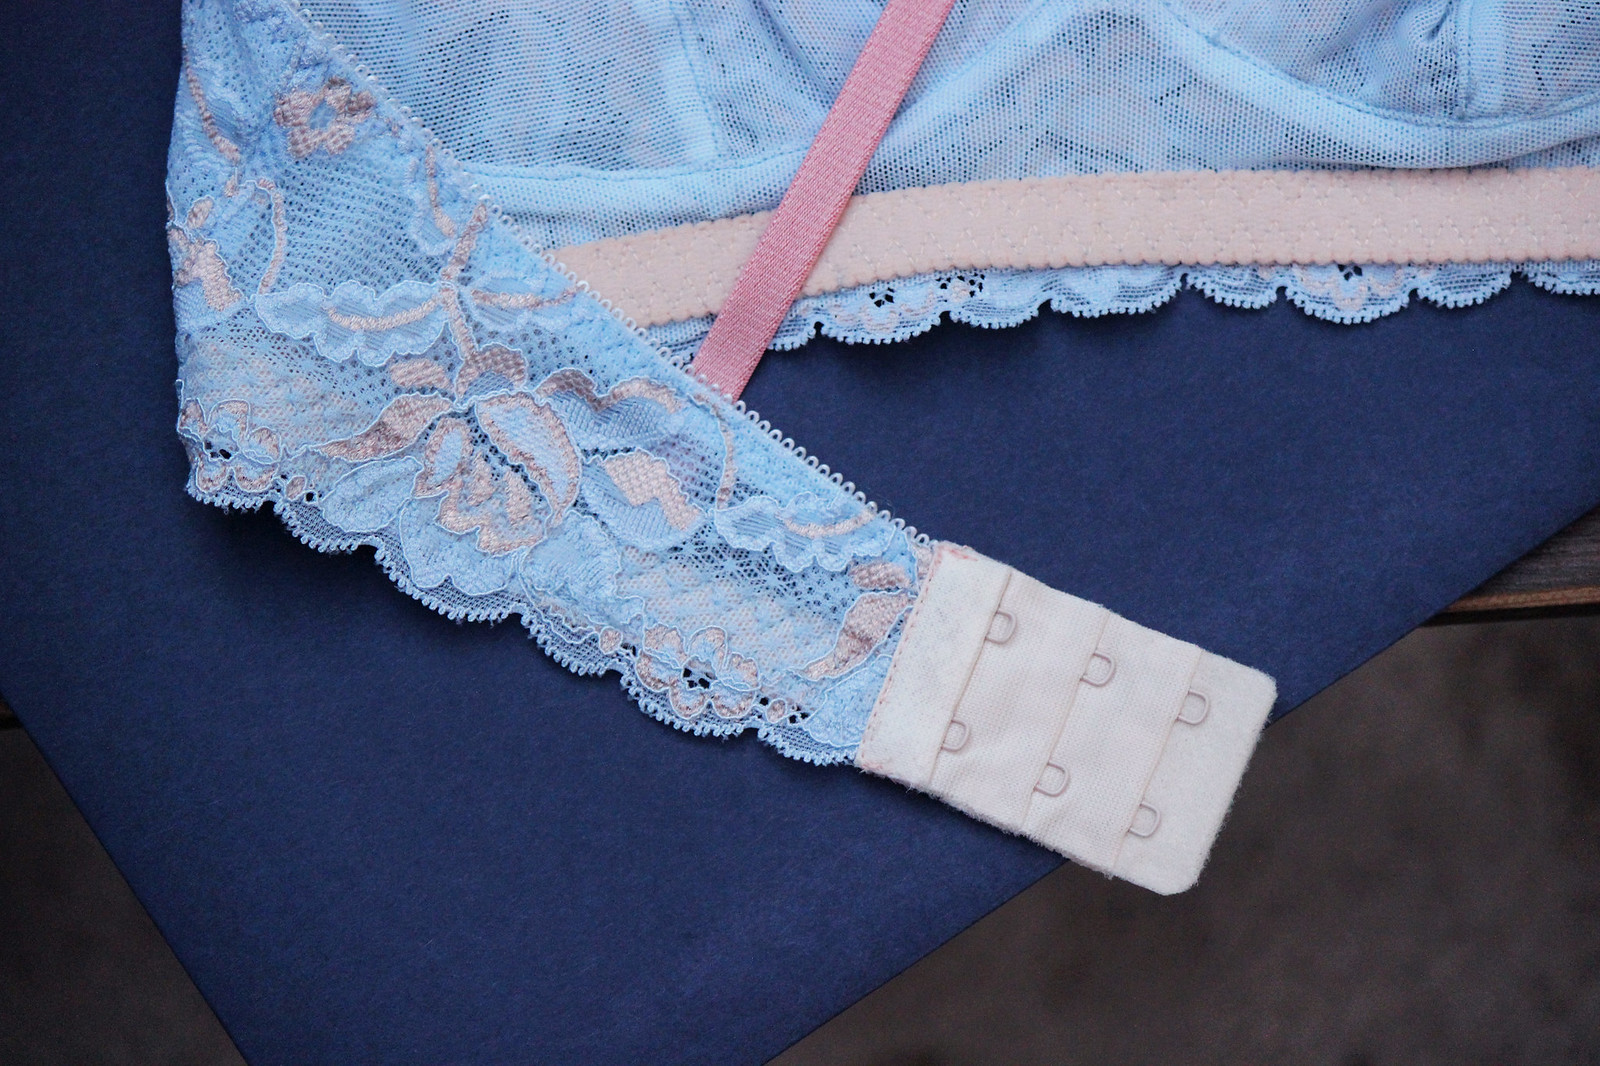 Watson Bra Sorbet Pastels Tailor Made Shop